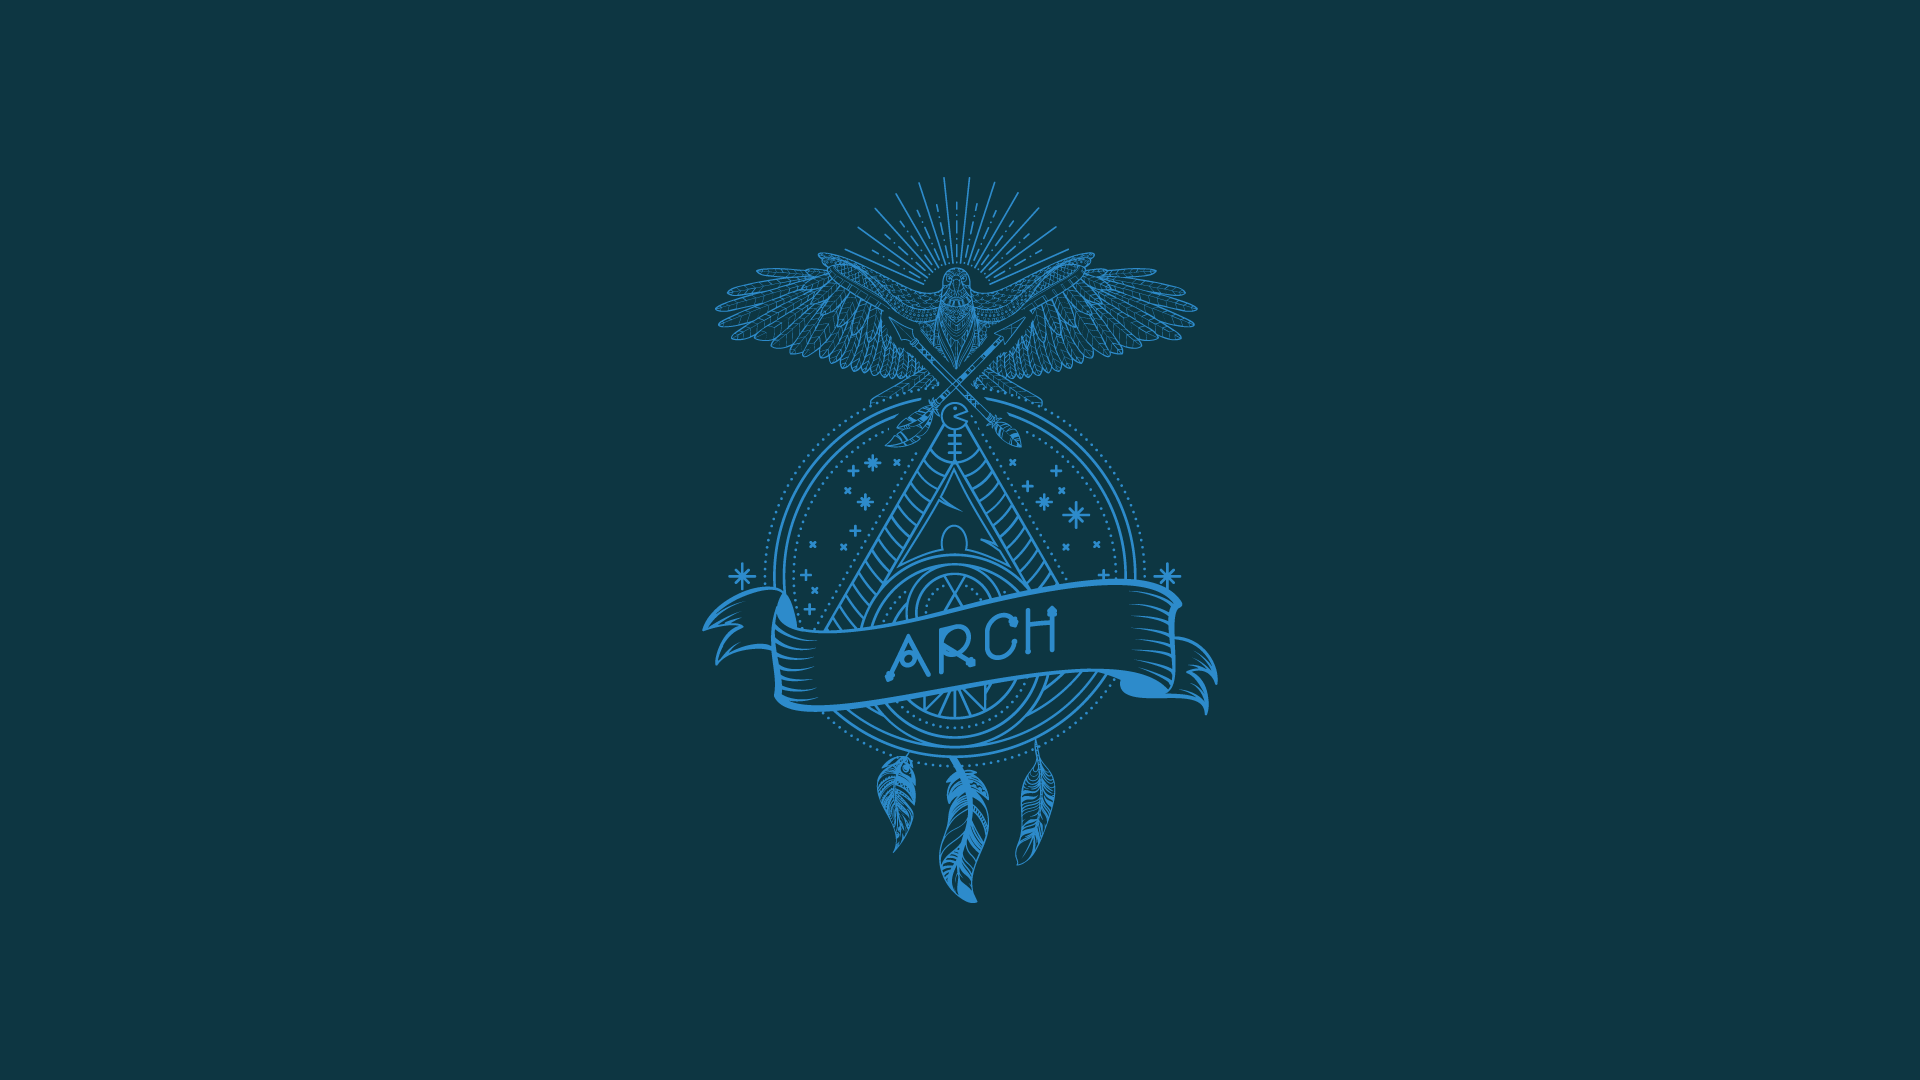 General 1920x1080 Arch Linux Linux open source